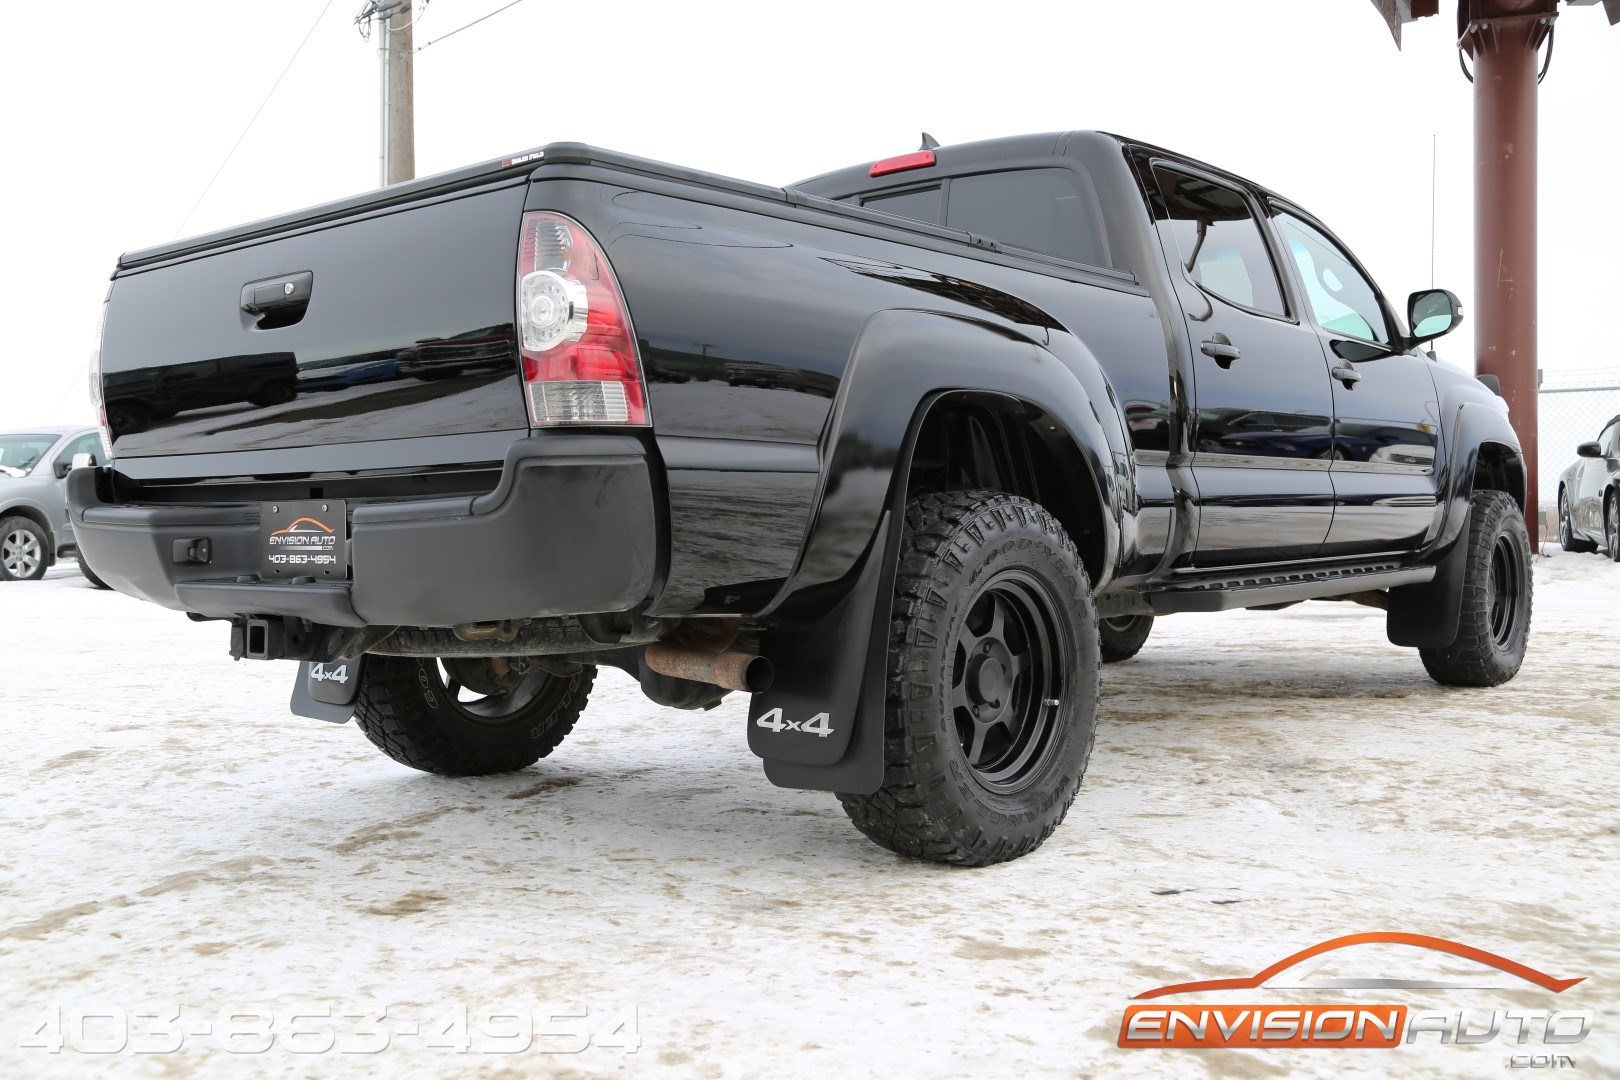 2013 toyota tacoma trd sport supercharged double cab long bed 4 4 envision auto calgary. Black Bedroom Furniture Sets. Home Design Ideas